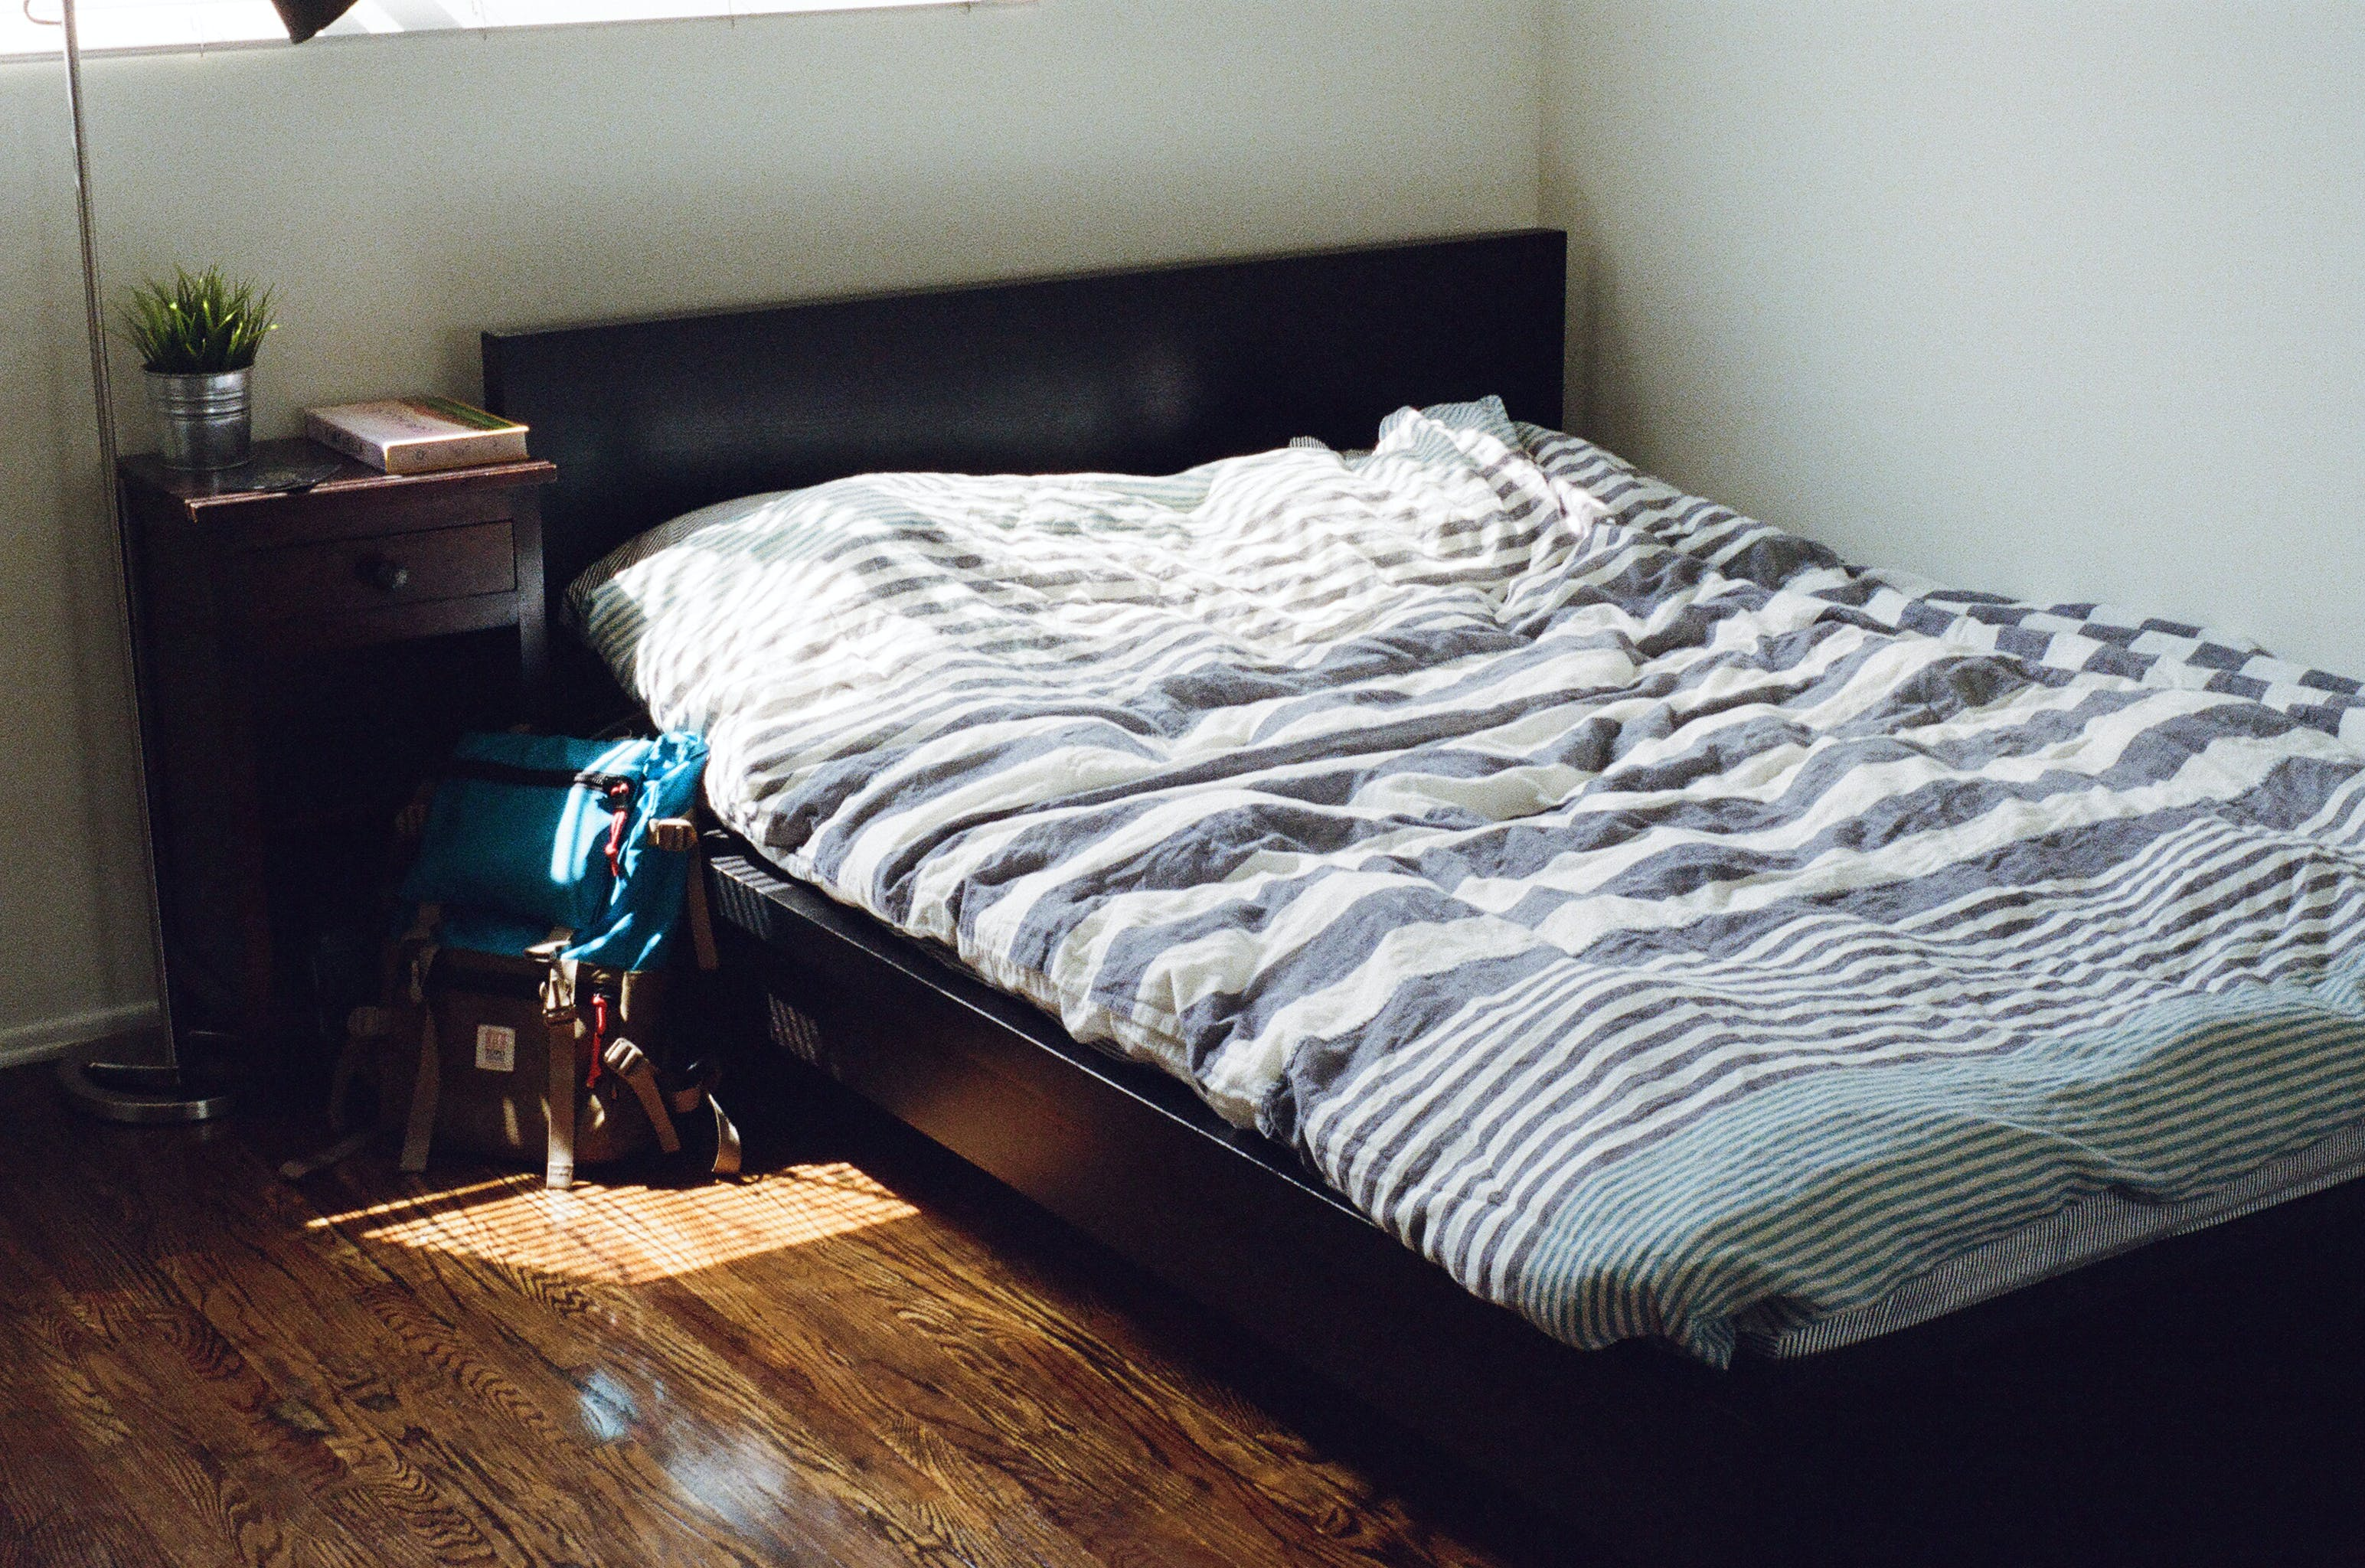 Black Wooden Bed Framed and White and Gray Striped Bedspread